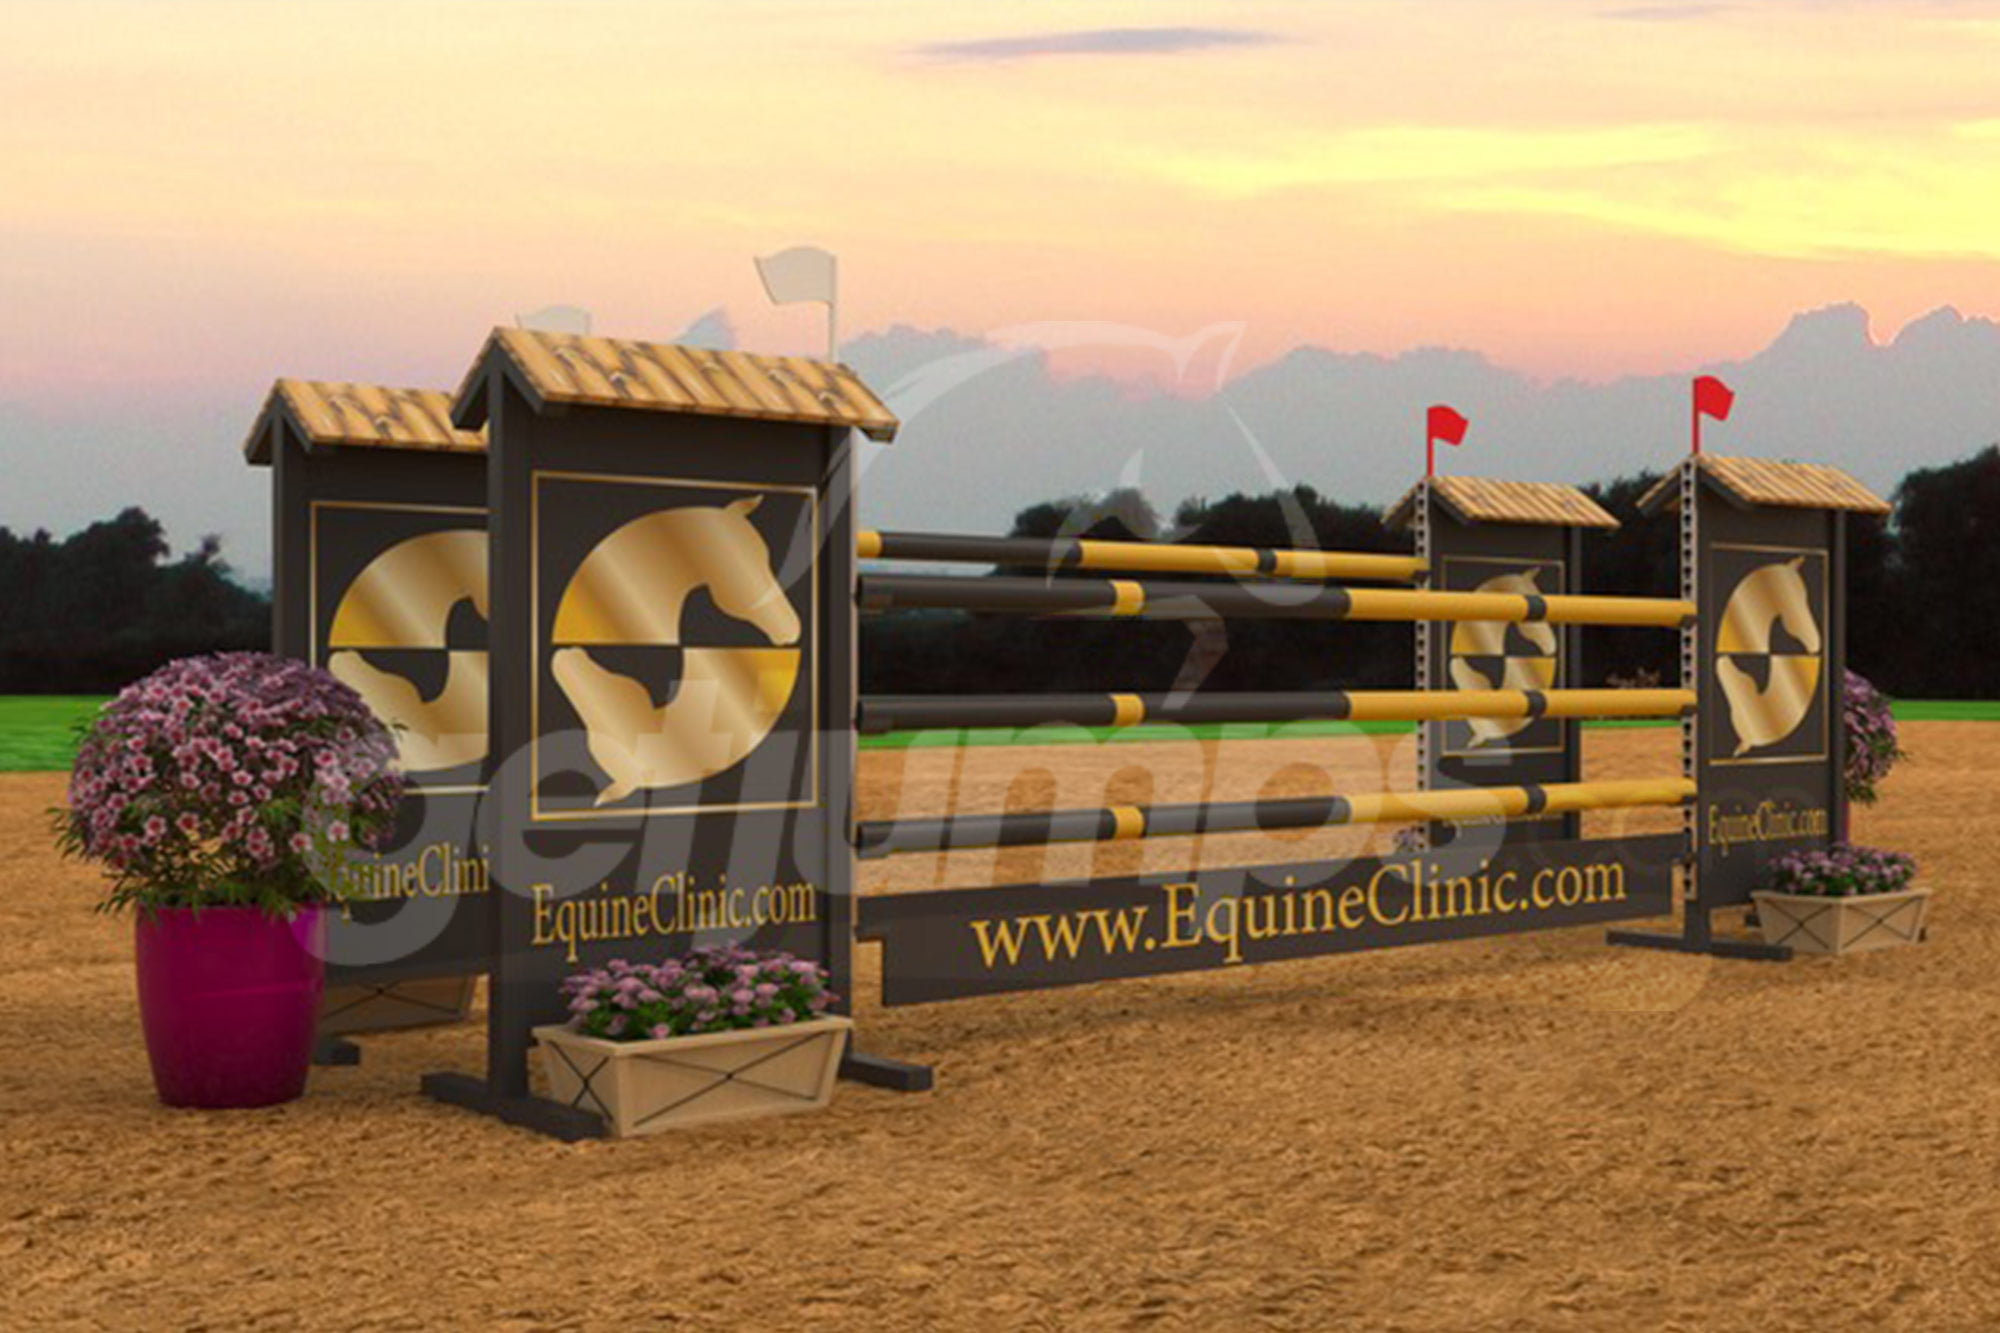 EquineClinic themed black and gold sponsor jump